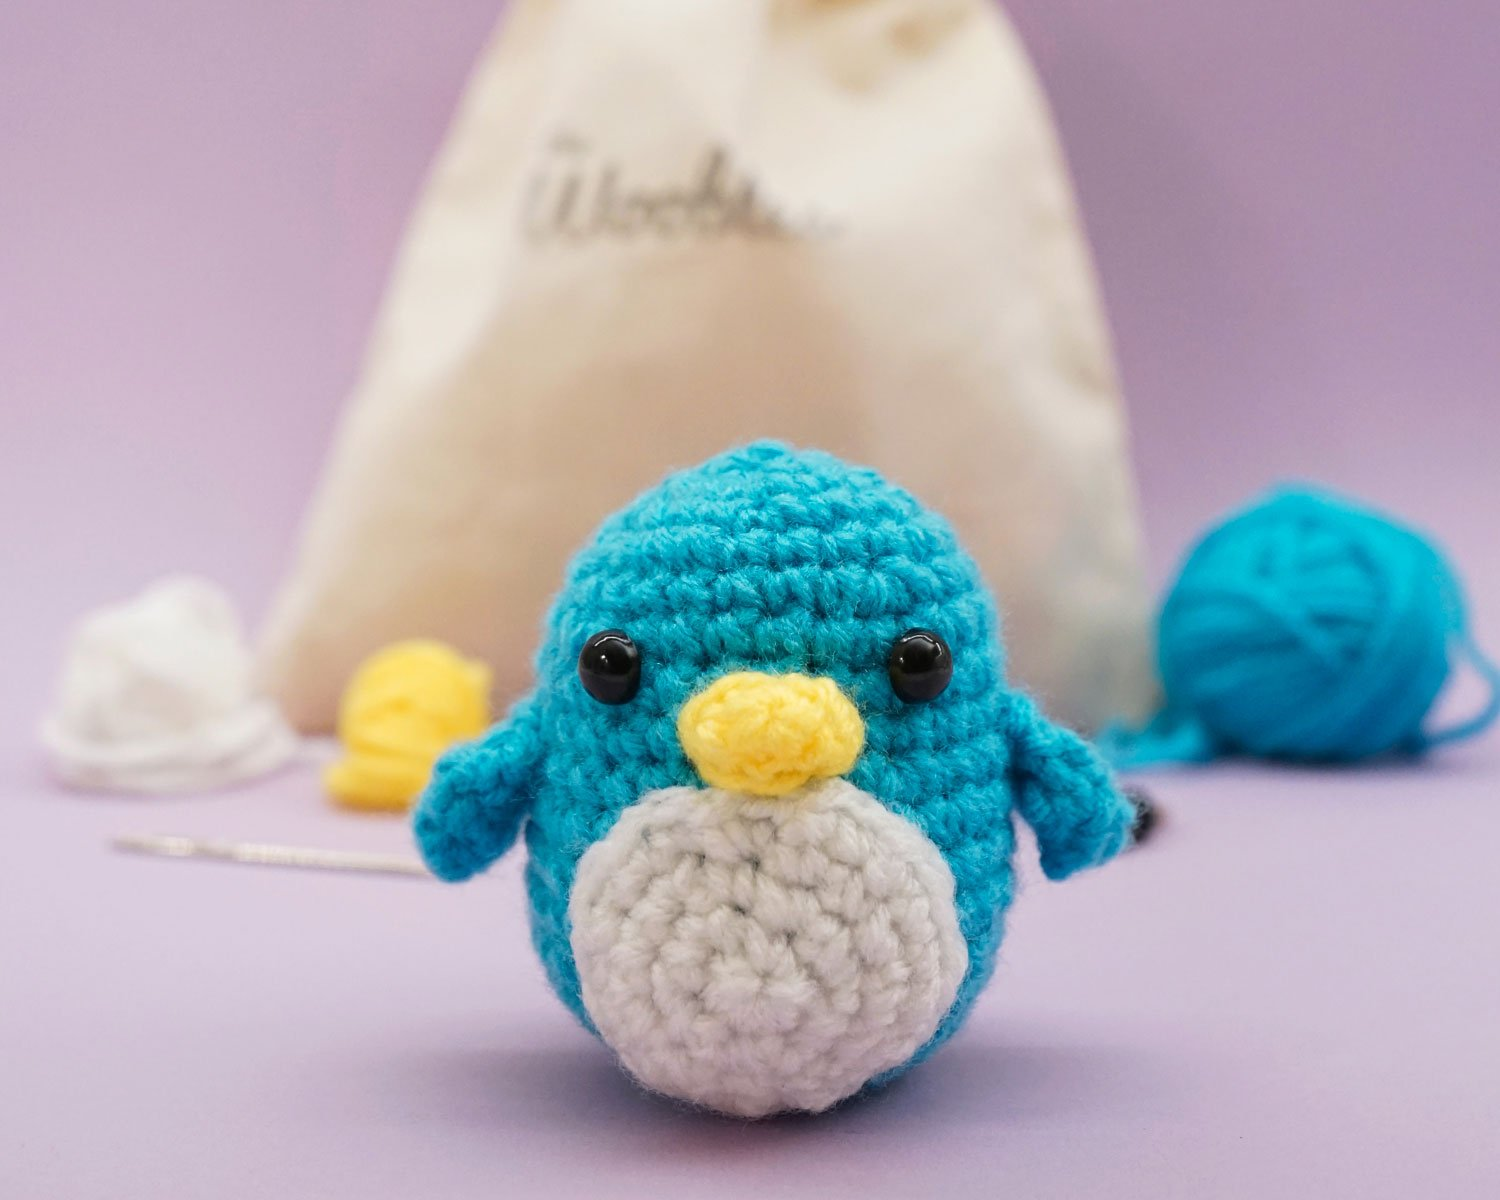 A crocheted penguin from The Woobles.